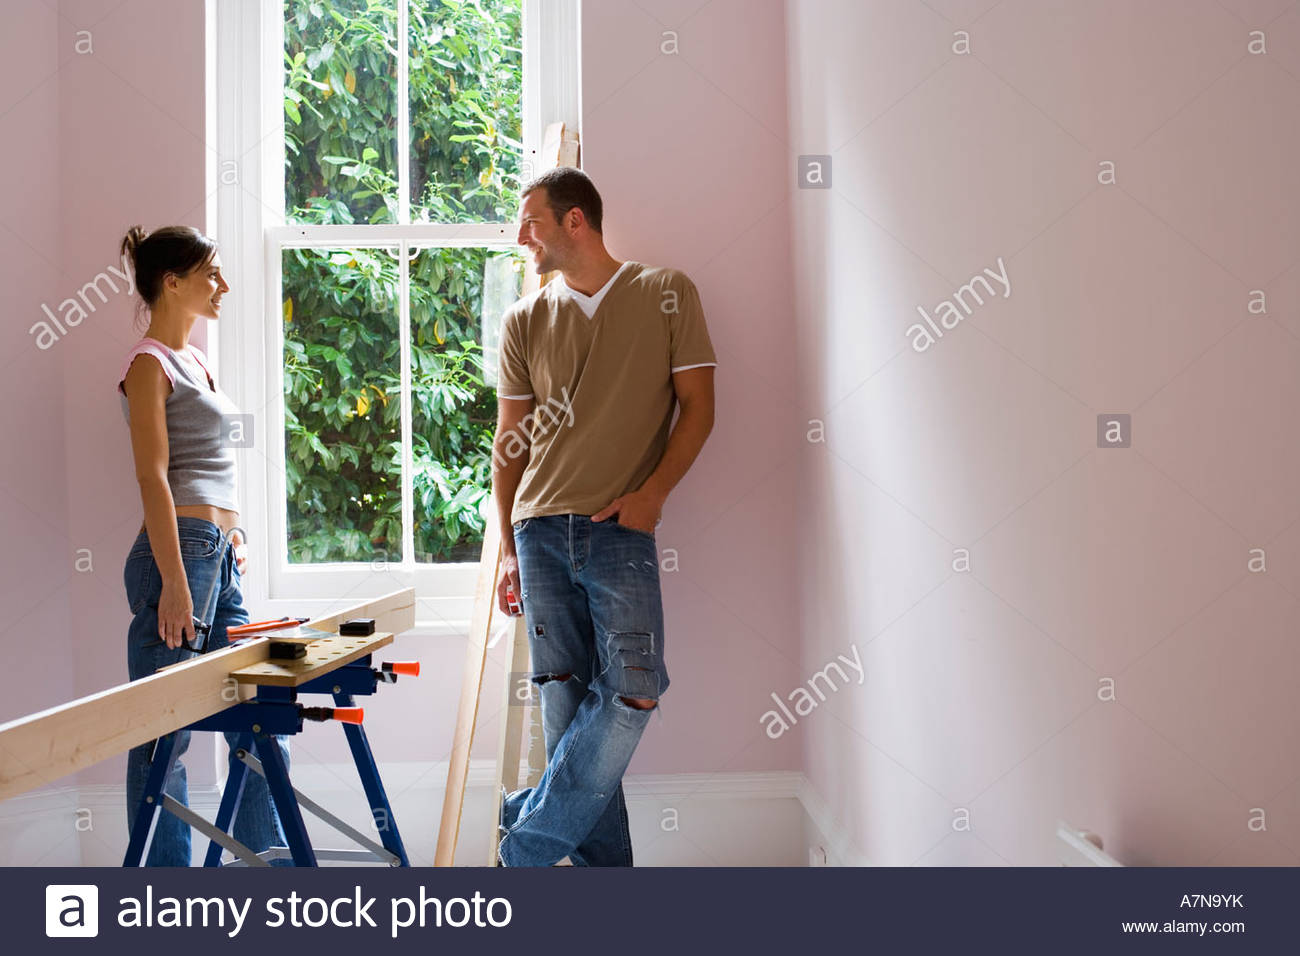 Couple doing DIY at home standing beside window woman holding glue gun near timber on workbench Stock Photo